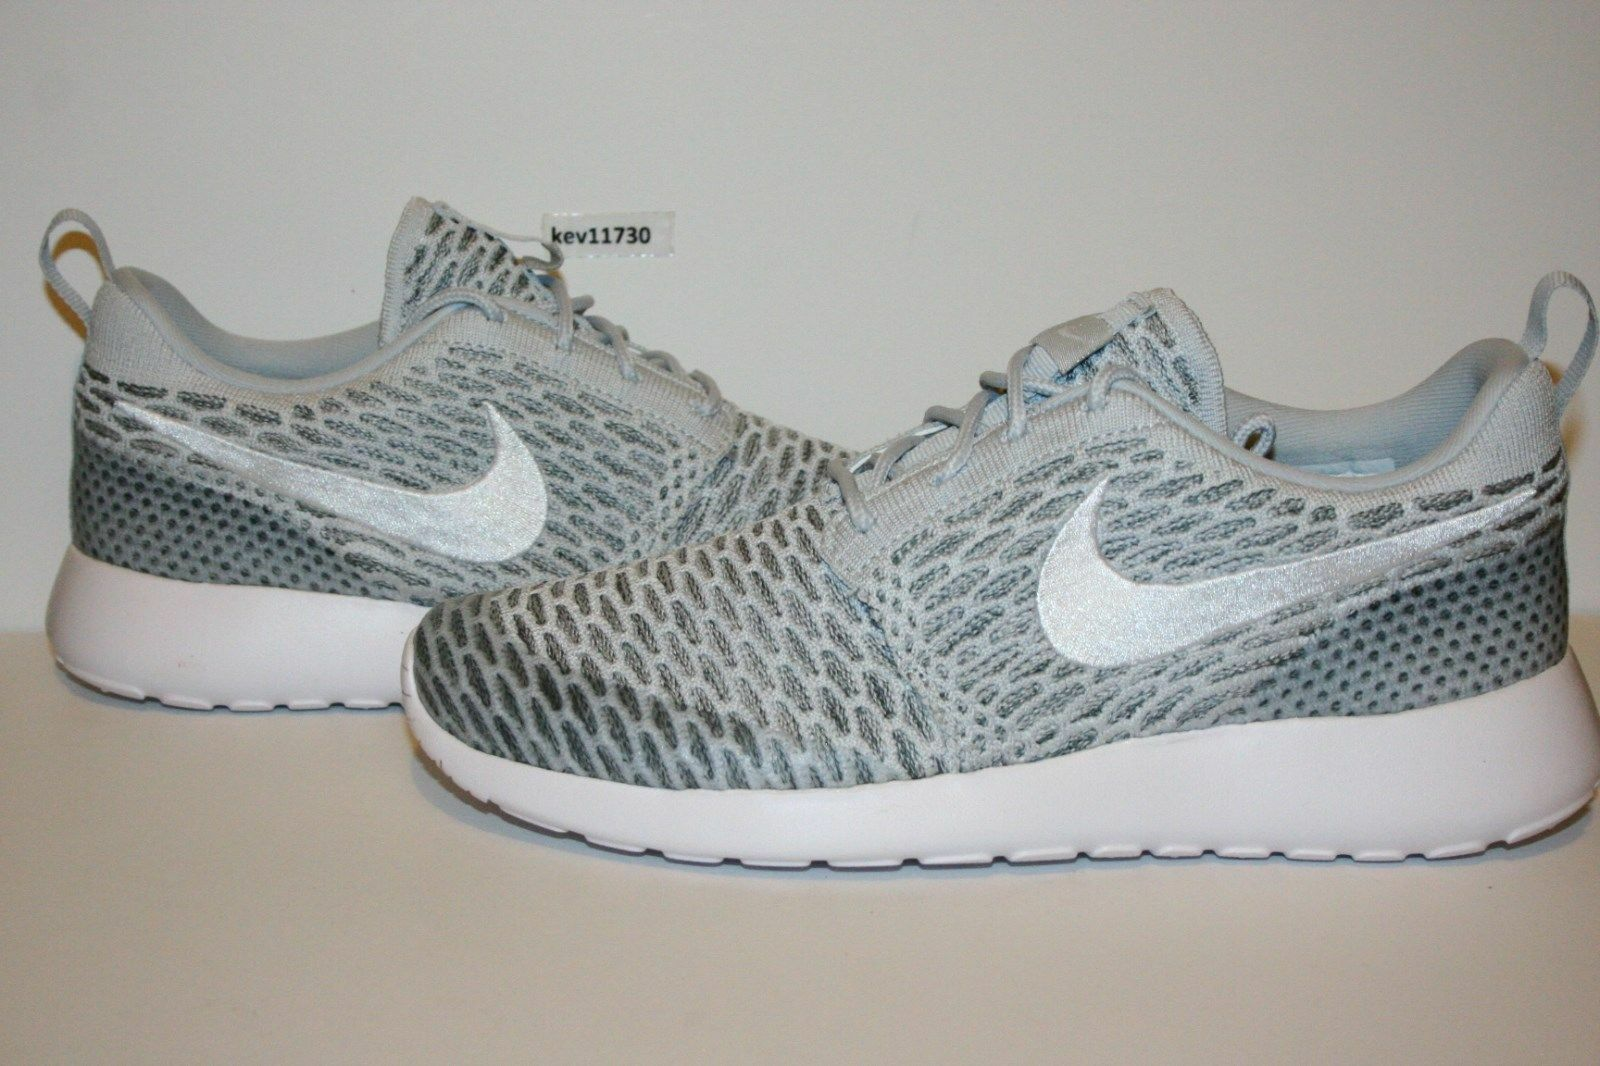 AUTHENTIC Nike Roshe Run One Flyknit Cool Gris blanc 704927 009 femmes Taille